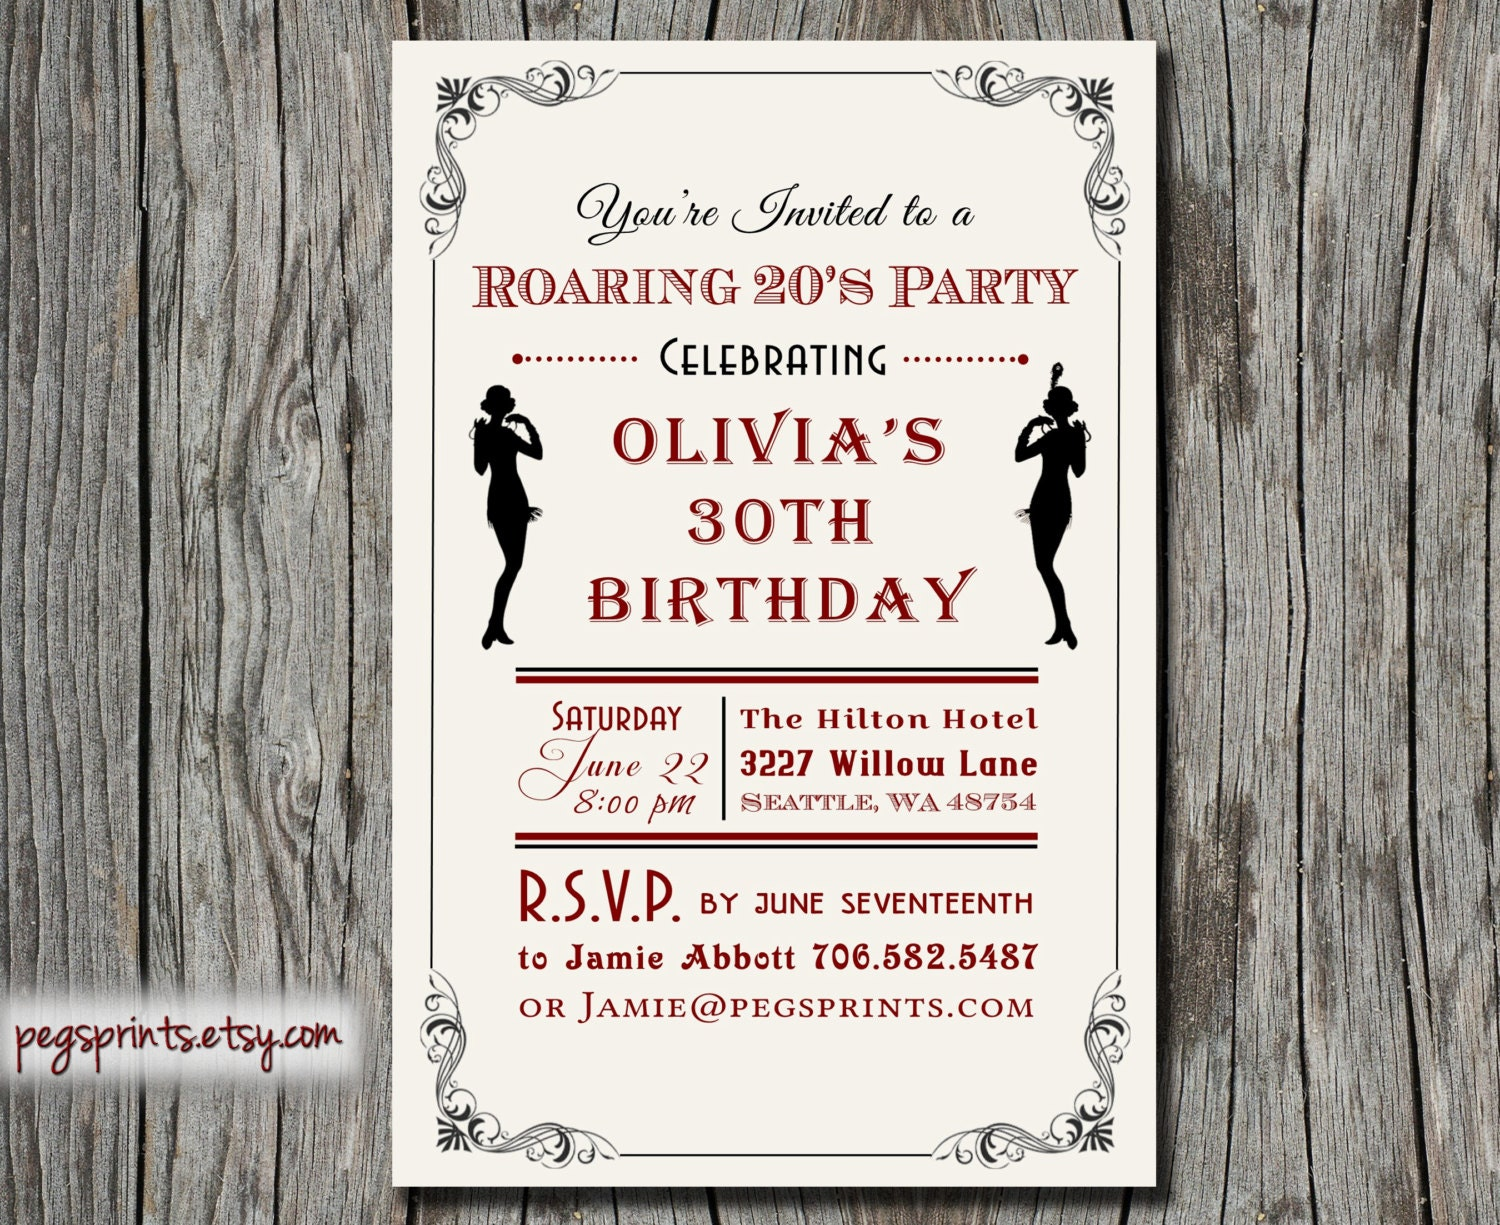 Awesome 1 Page Resume Format Download Small 100 Chart Template Square 16 Birthday Invitation Templates 18 Year Old Resume Sample Old 1st Birthday Invitation Template Dark2 Page Resume Format Example 1920s Theme Party Invitations Pictures To Pin On Pinterest   PinsDaddy